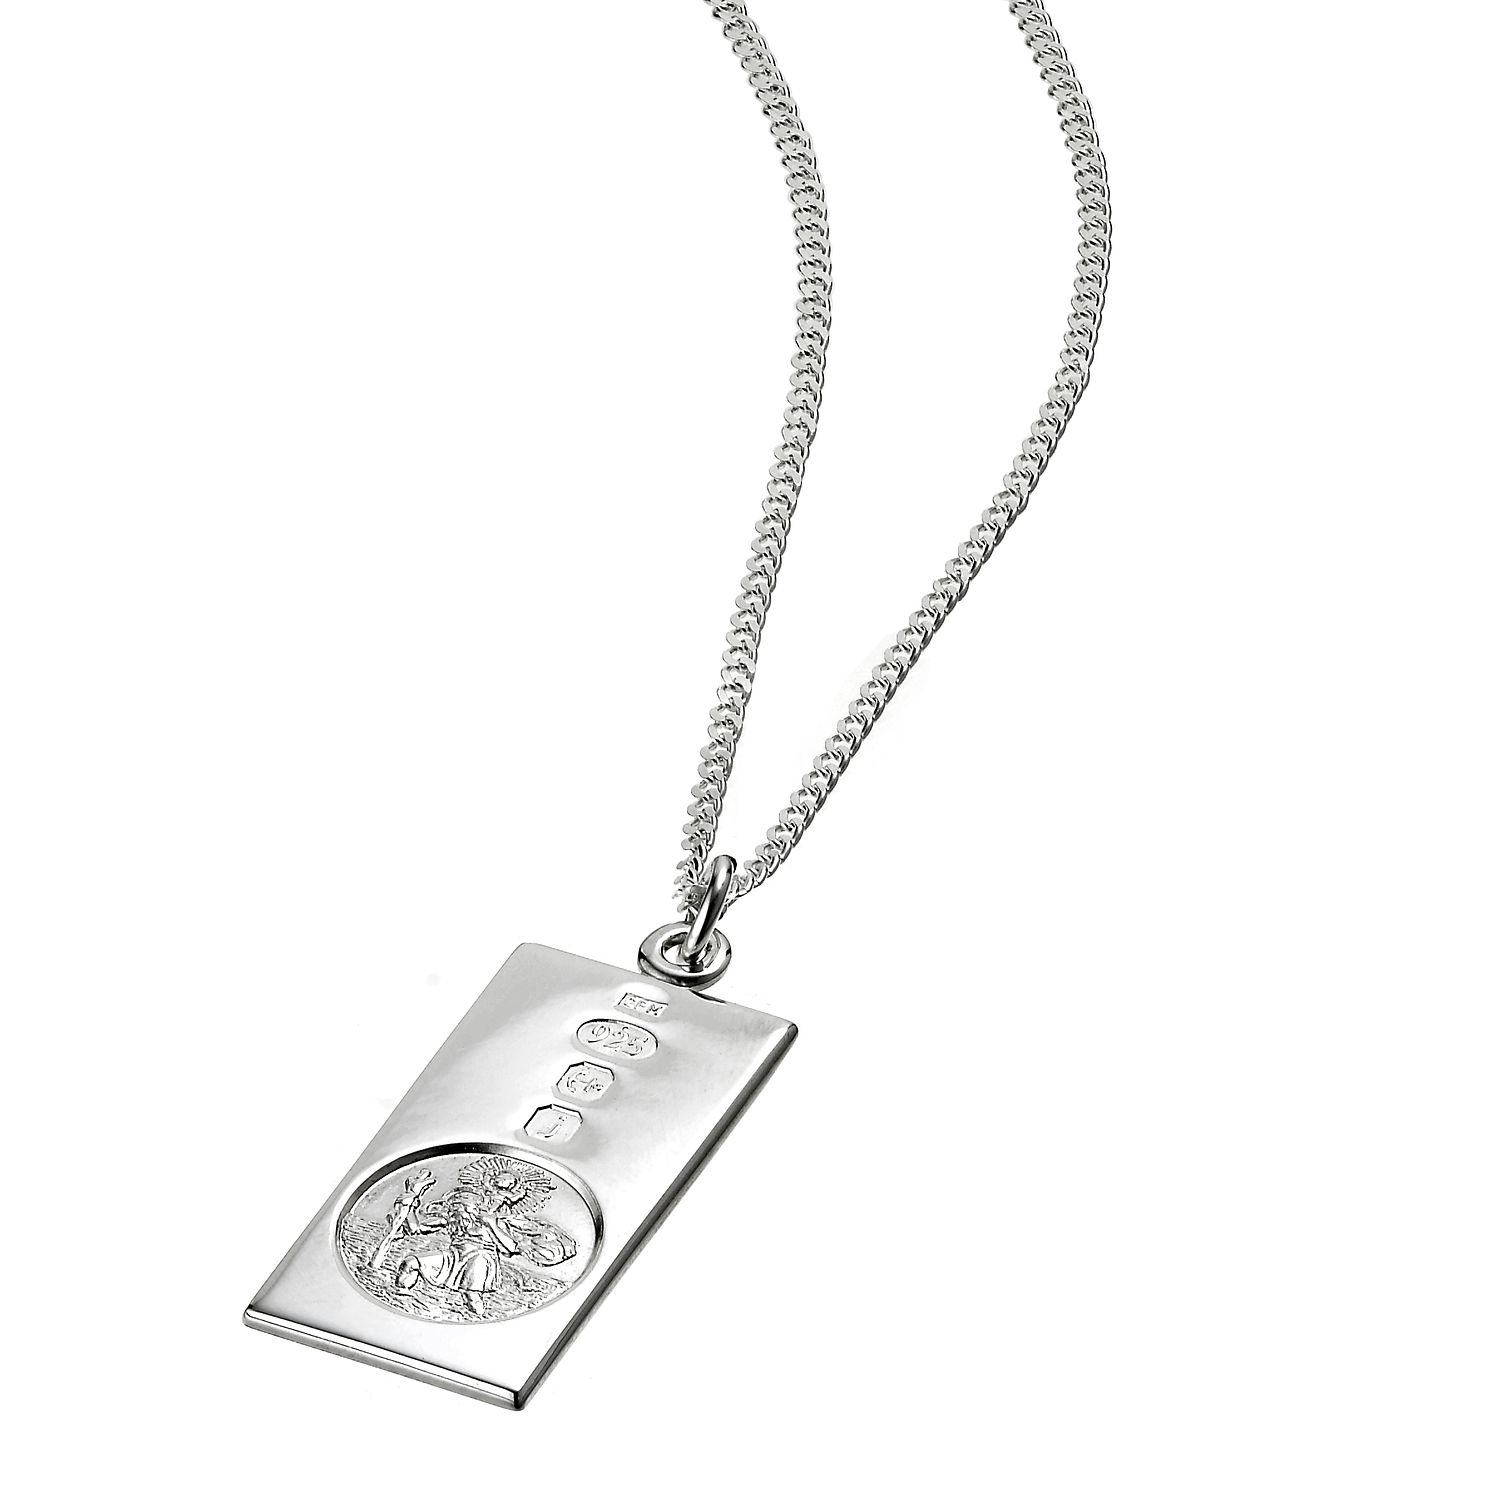 Necklaces hmuel sterling silver st christopher ingot pendant product number 3411745 mozeypictures Image collections